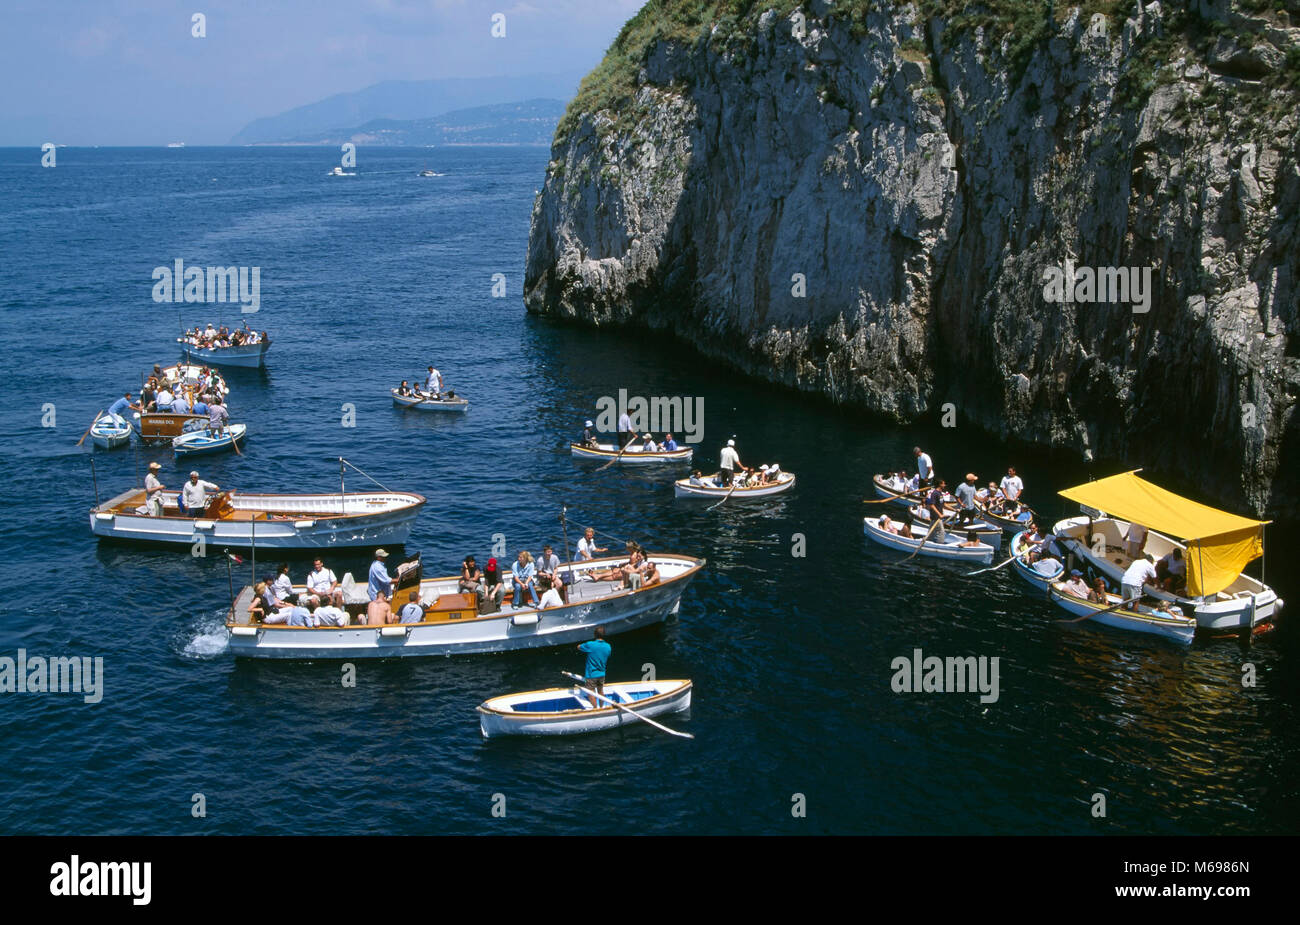 Boats in front of der Blue Grotto, Capri island, Italy, Europe - Stock Image